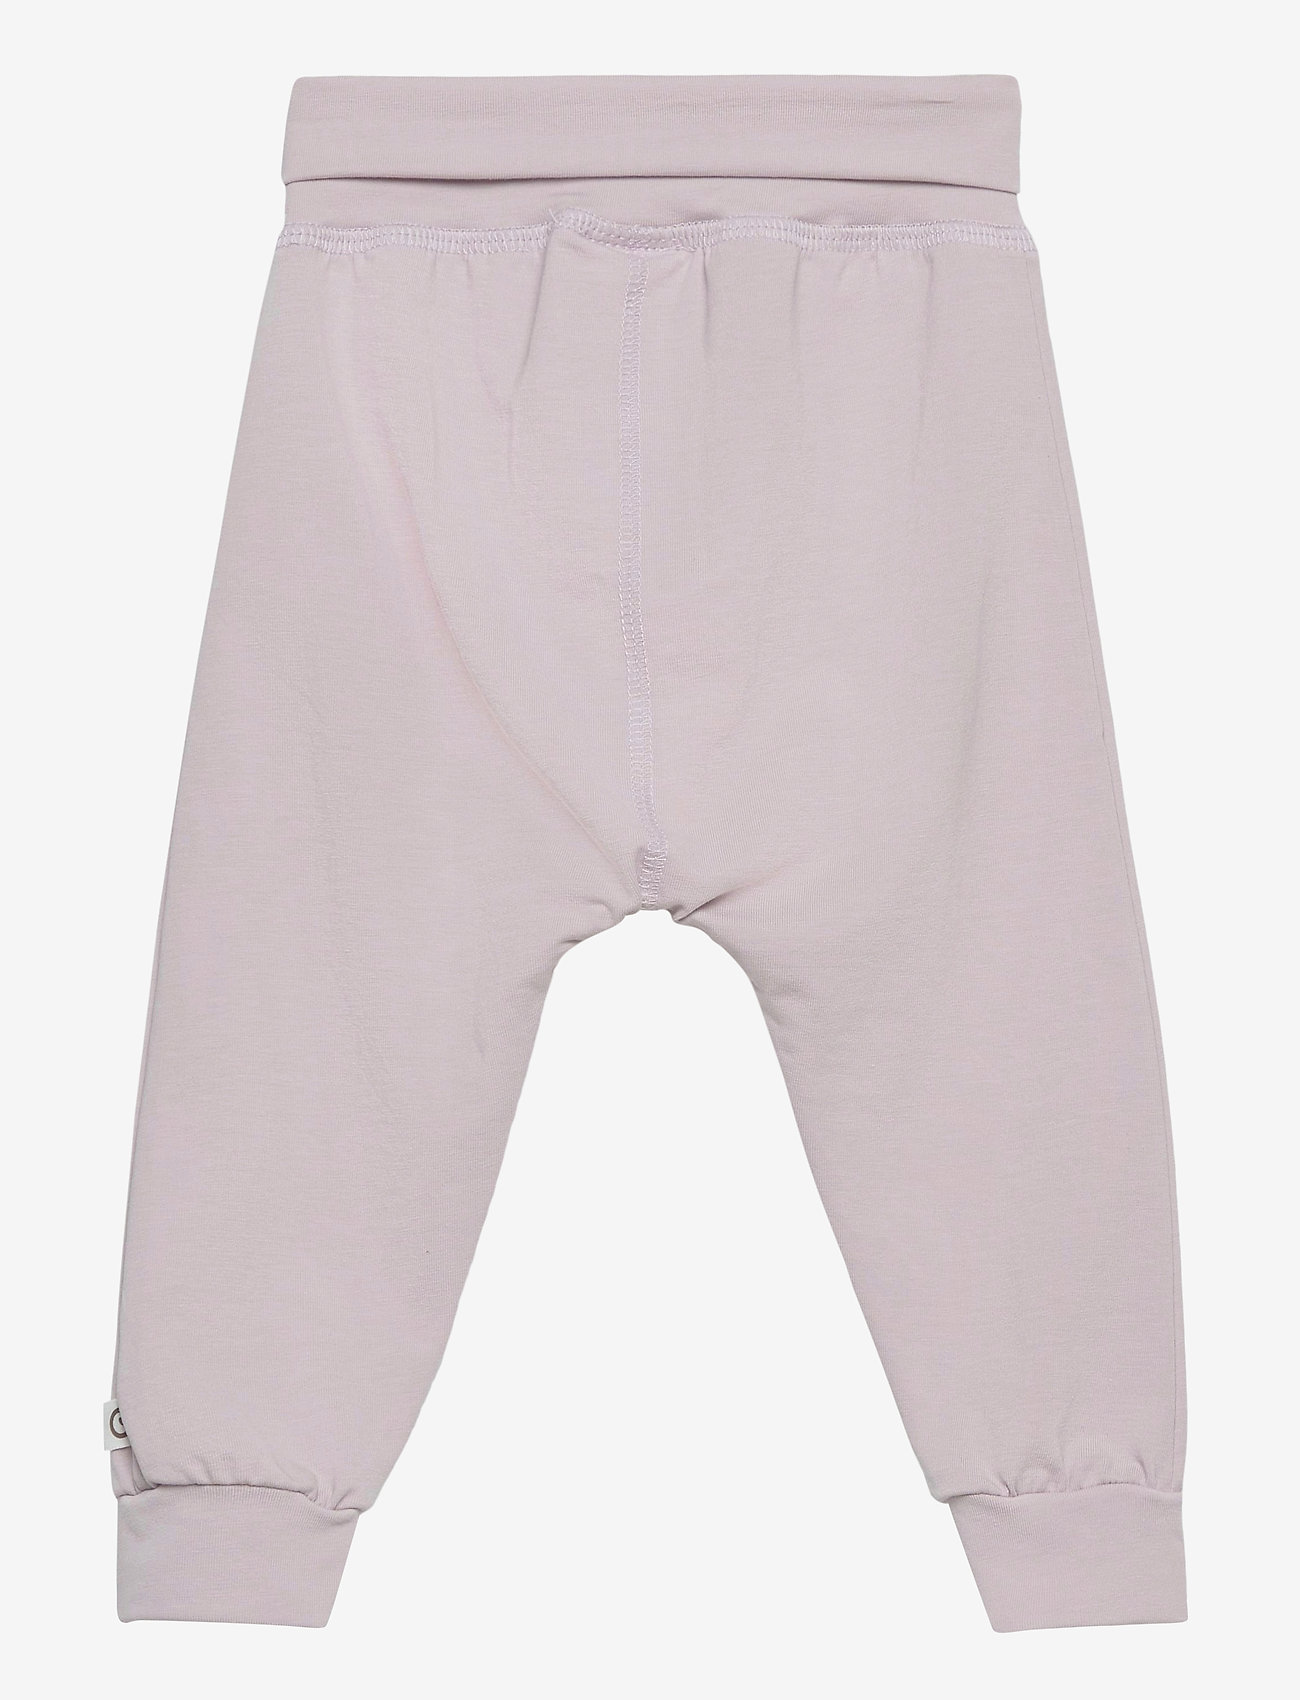 Müsli by Green Cotton - Cozy me pants - trousers - marble - 1